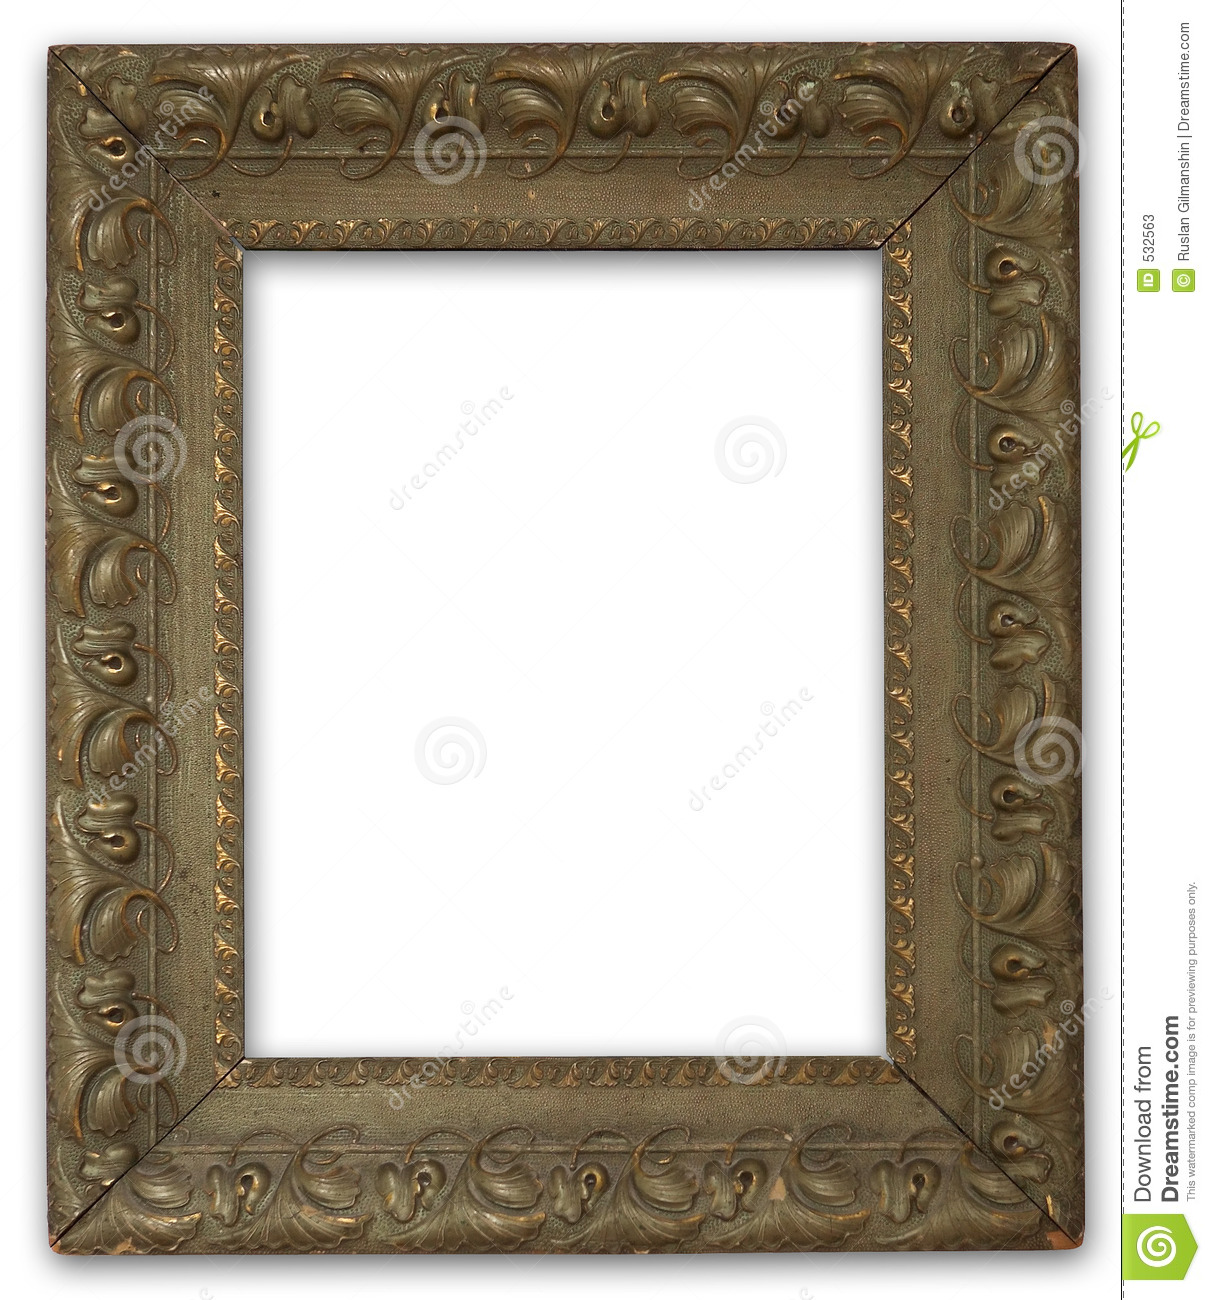 Painting Frames Painting Frame Stock Image Image Of Gold Isolate